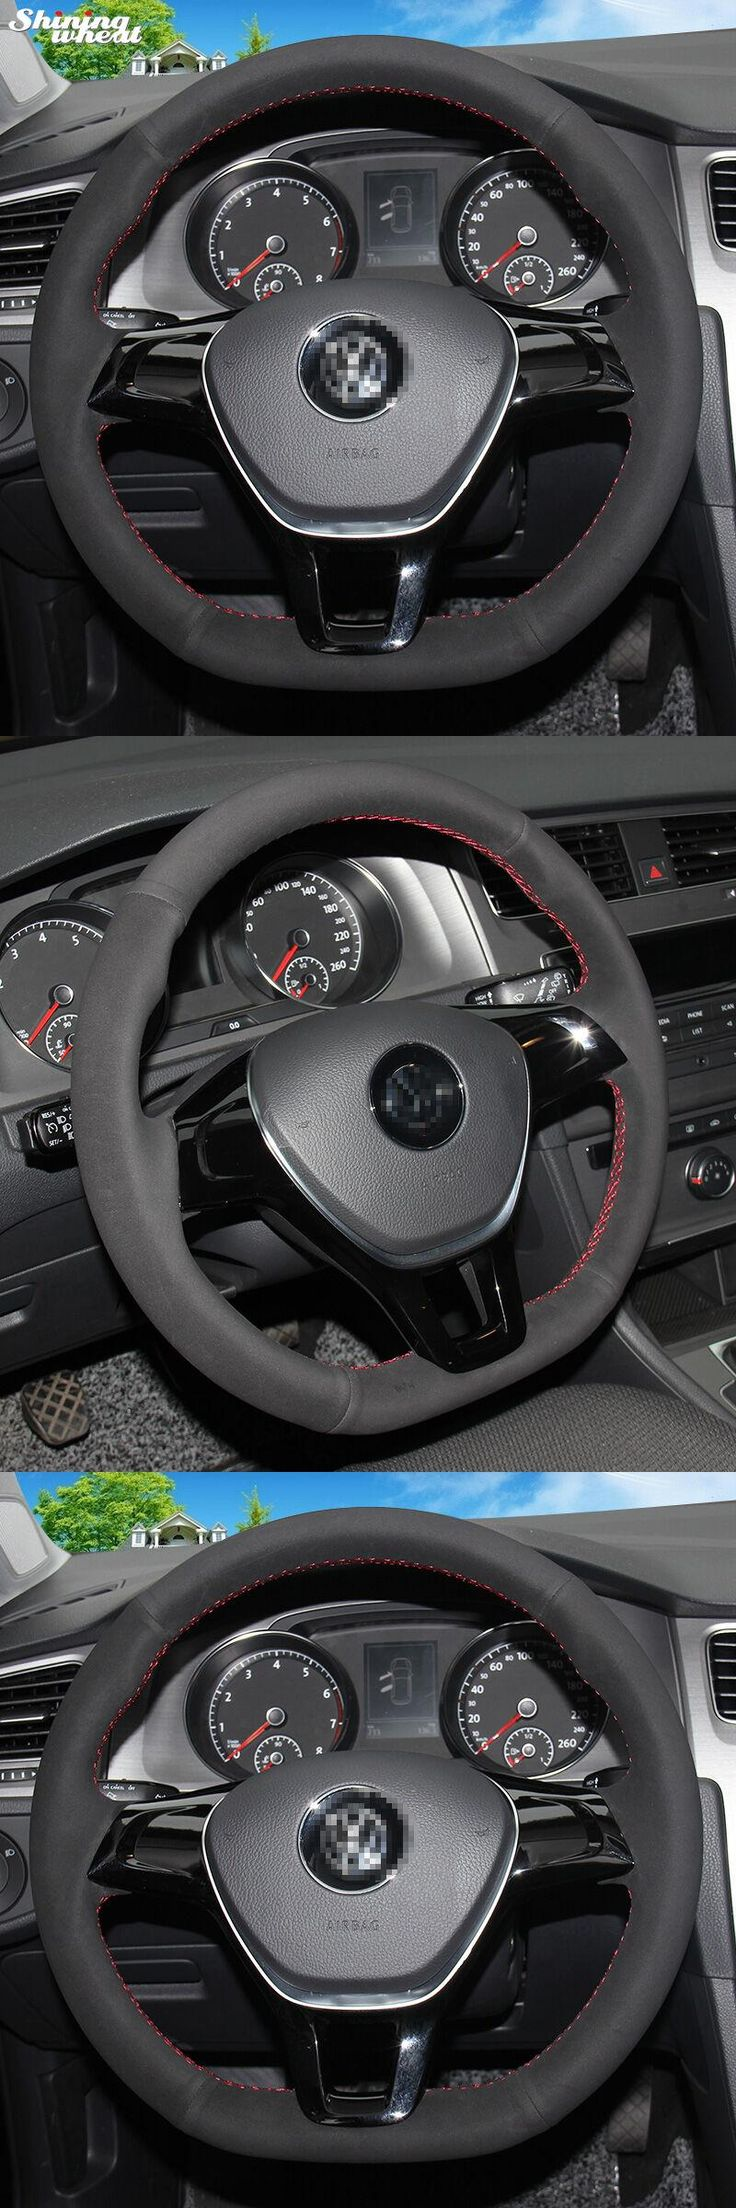 visit to buy shining wheat hand stitched black suede steering wheel cover for